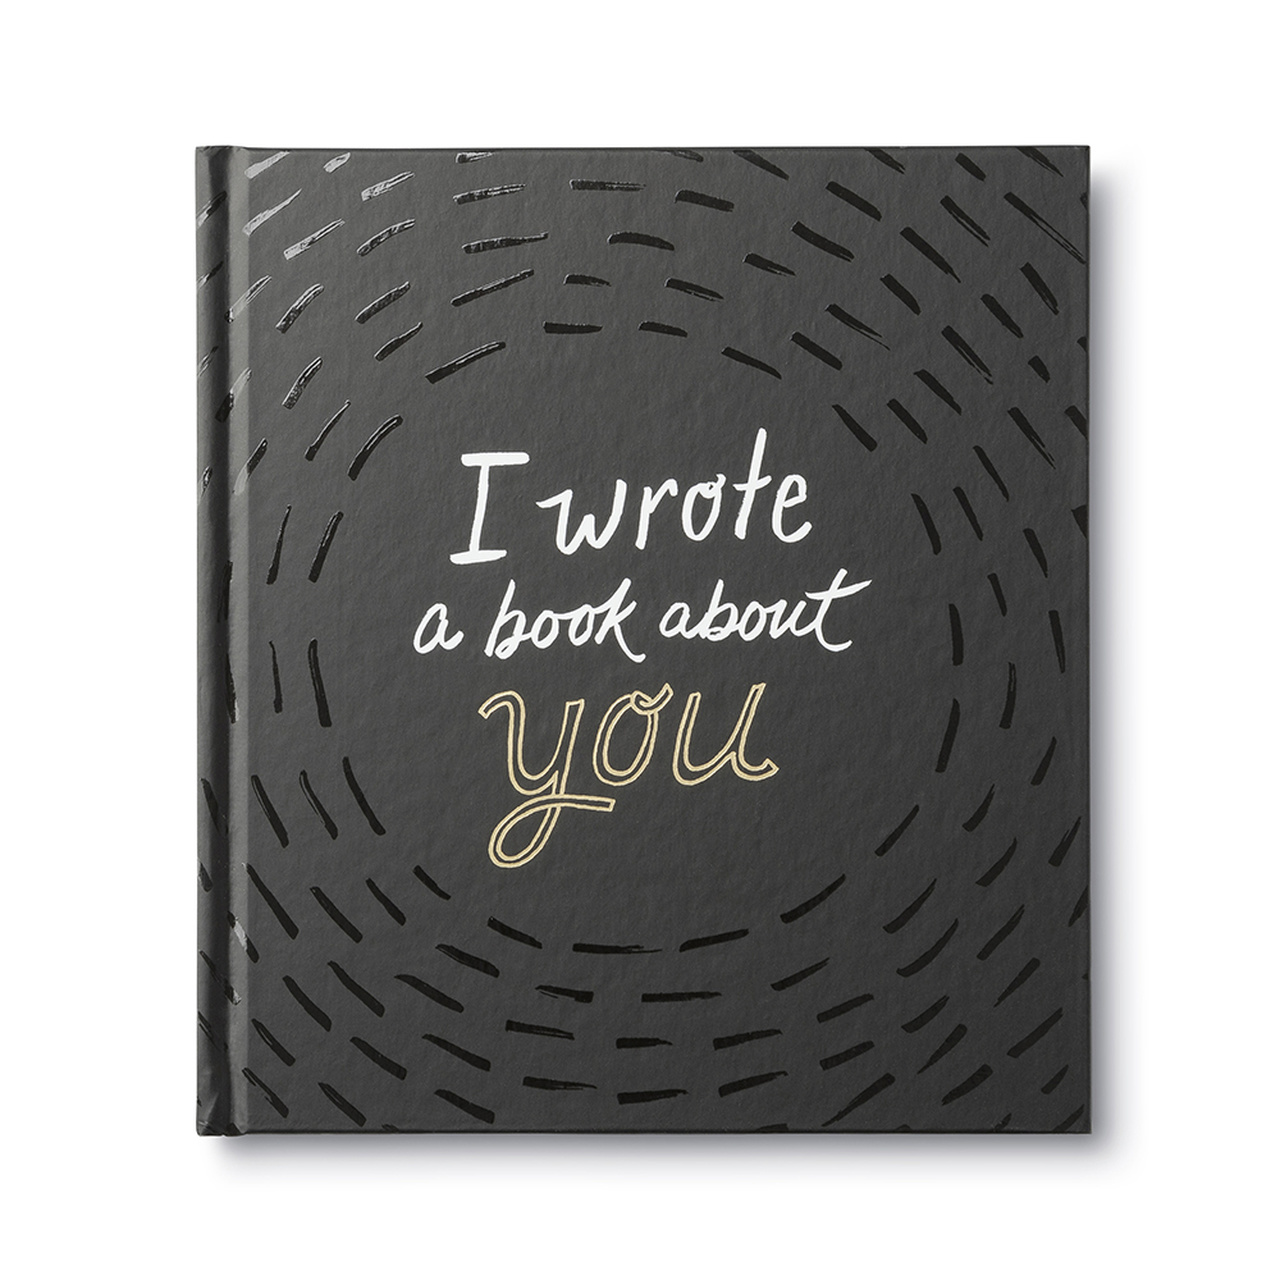 i wrote a book about you-1